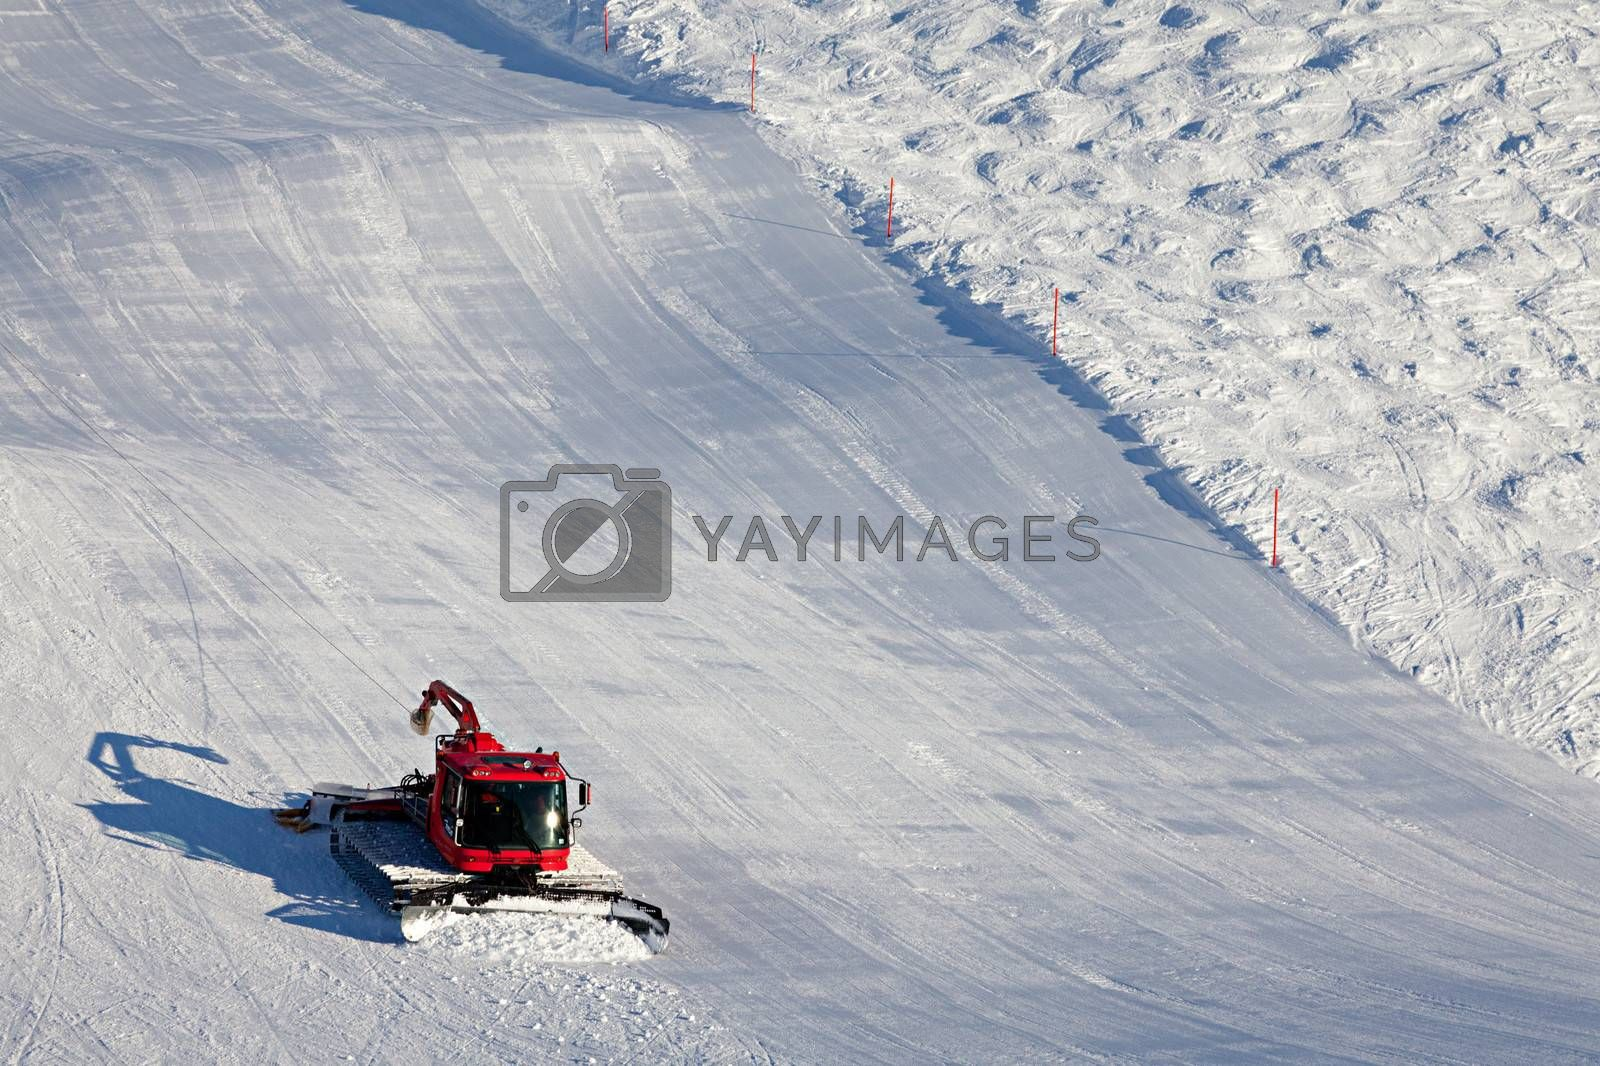 Royalty free image of Snow Cleaning on Ski Slopes by ajn